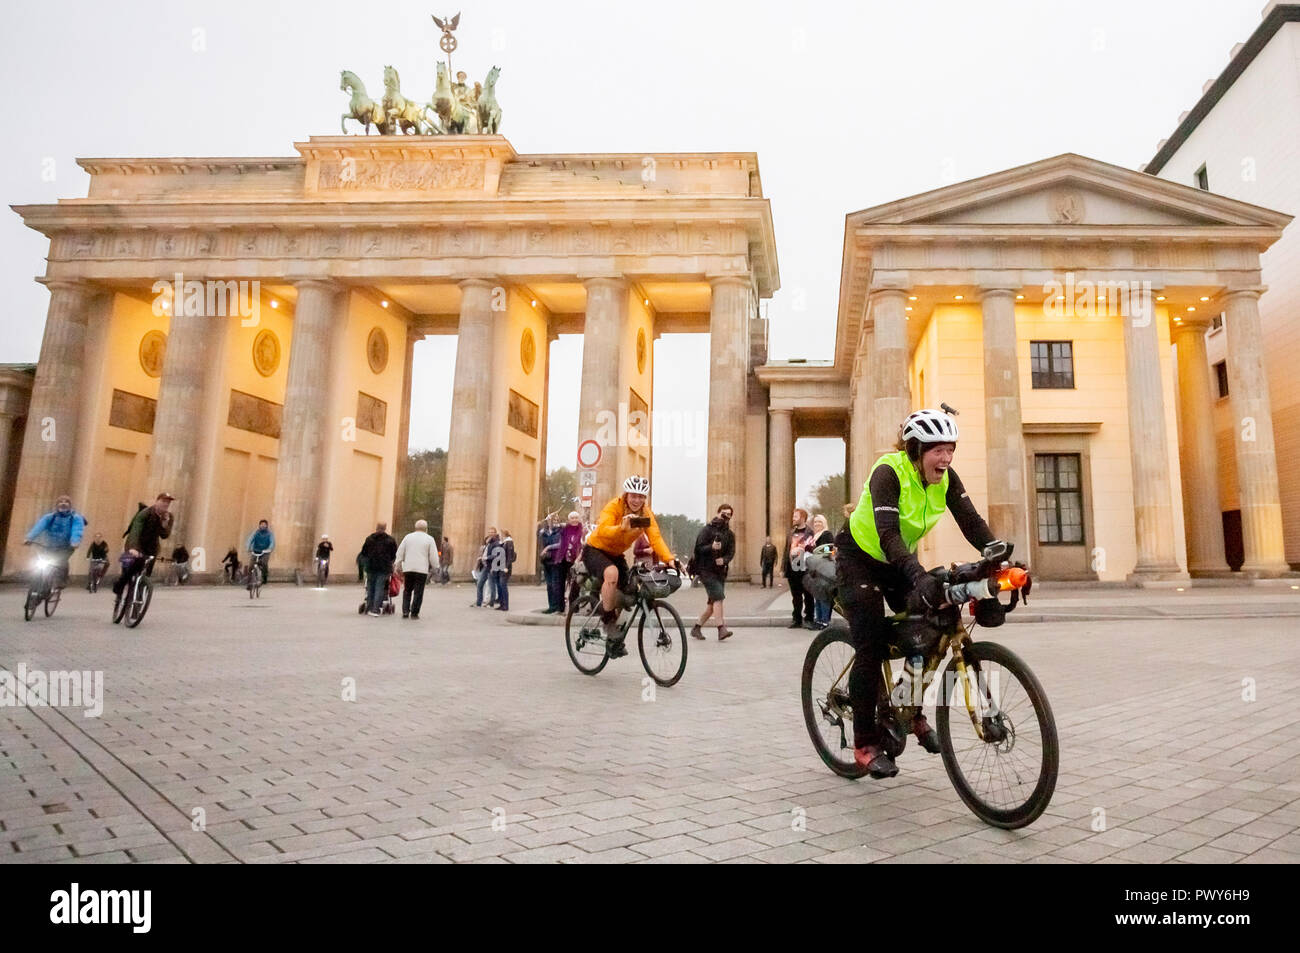 Berlin, Germany. 18th Oct, 2018. Jenny Graham laughs when she arrives at the Brandenburg Gate after having circumnavigated the world by bicycle. The British woman was the first woman to circumnavigate the world by bicycle alone in only 125 days. The previous world record was 144 days. Credit: Christoph Soeder/dpa/Alamy Live News - Stock Image